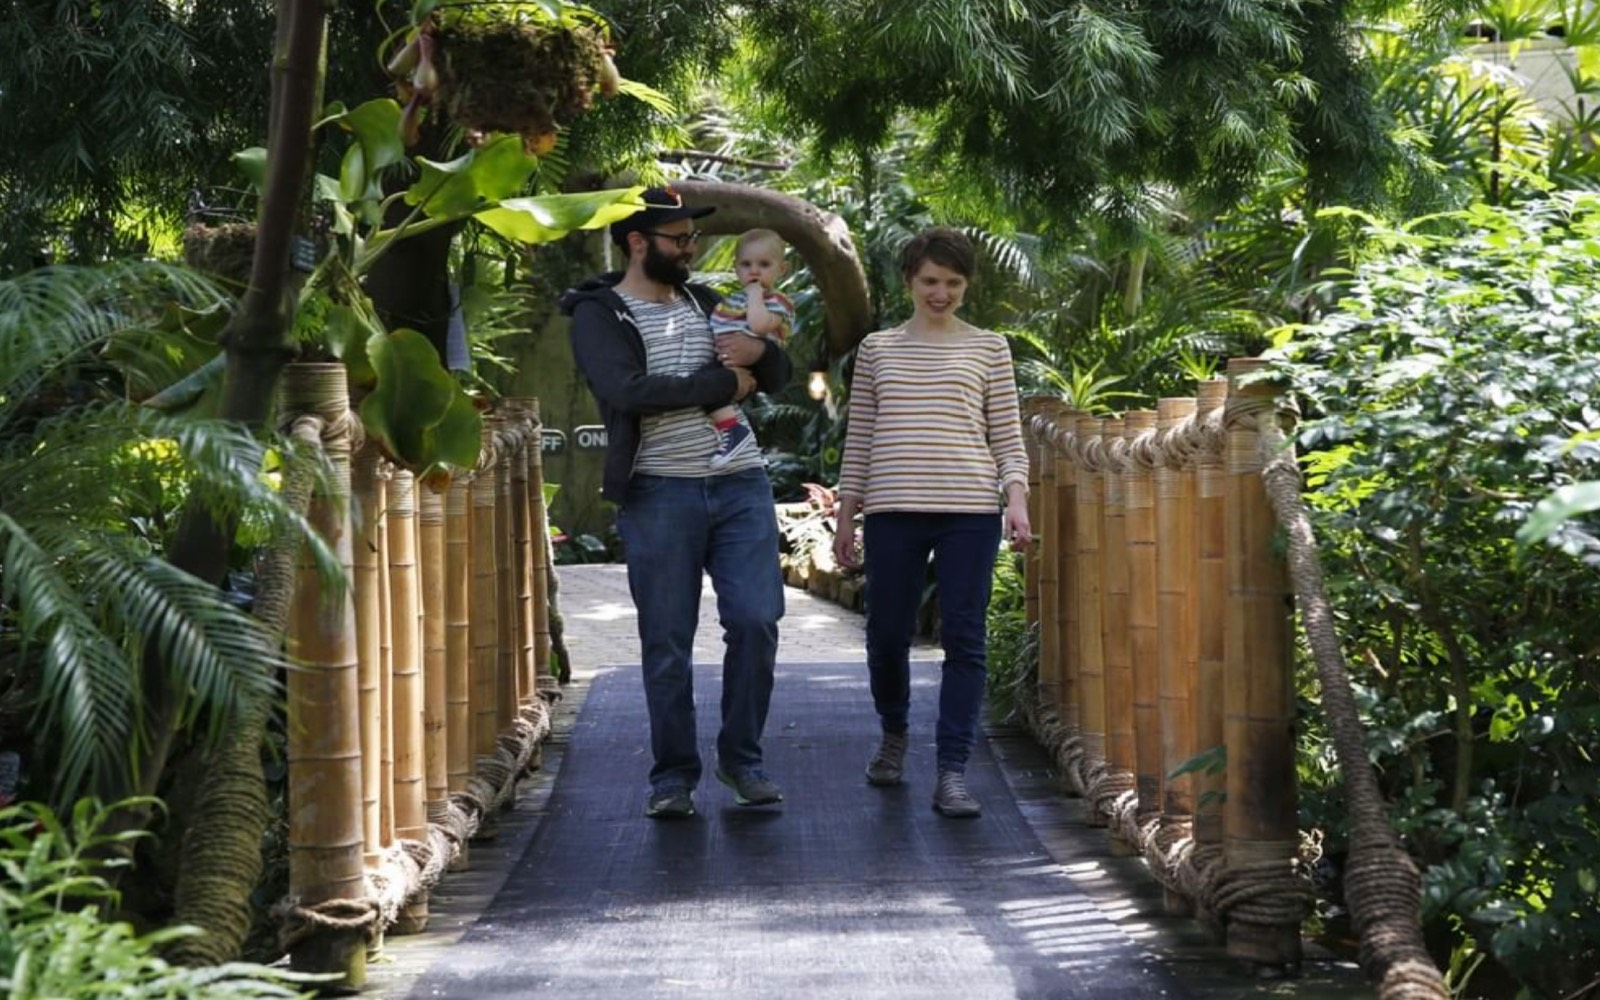 A family visits the Bloedel Conservatory, Vancouver